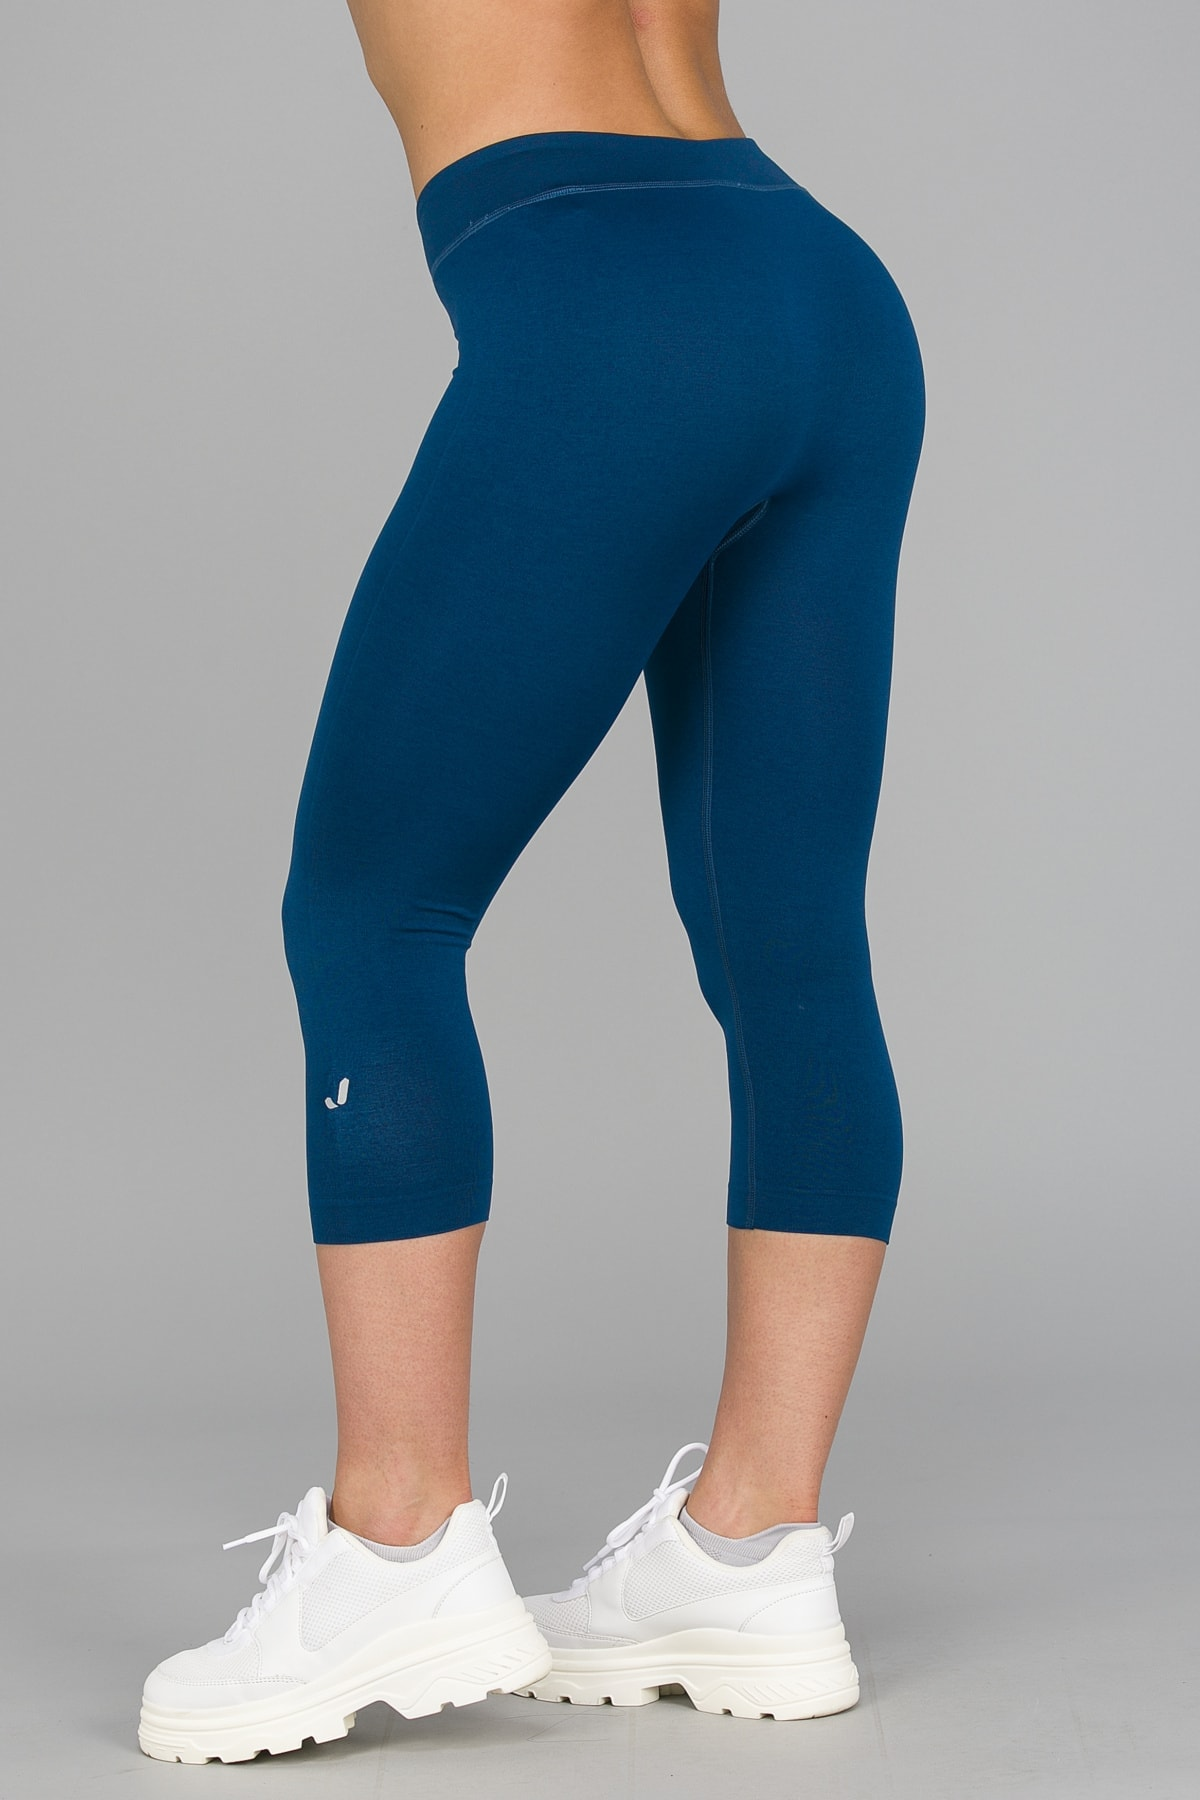 Jerf Captiva Tights (3:4) Navy11